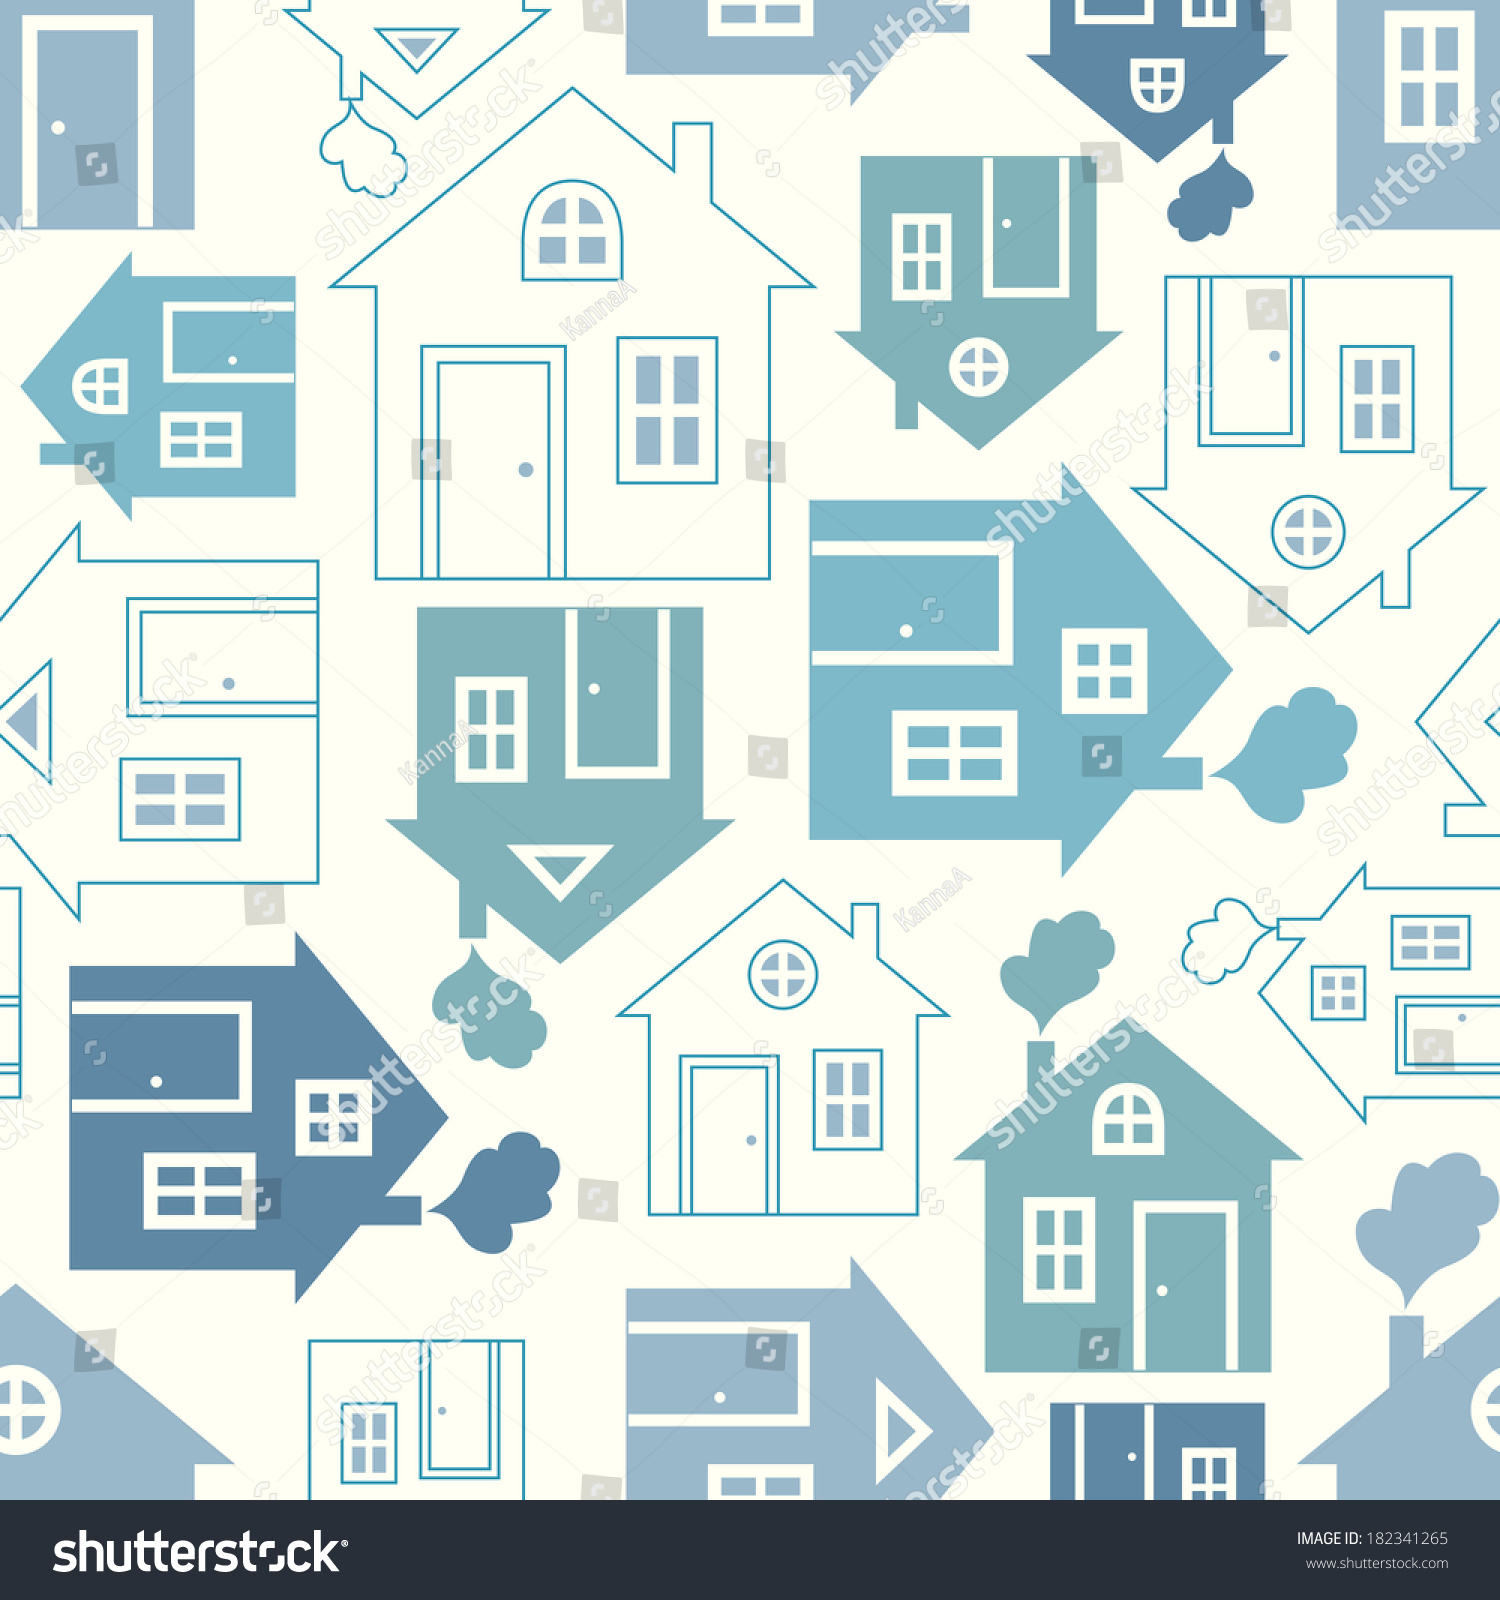 Home sweet home house silhouette outline stock vector for House pattern